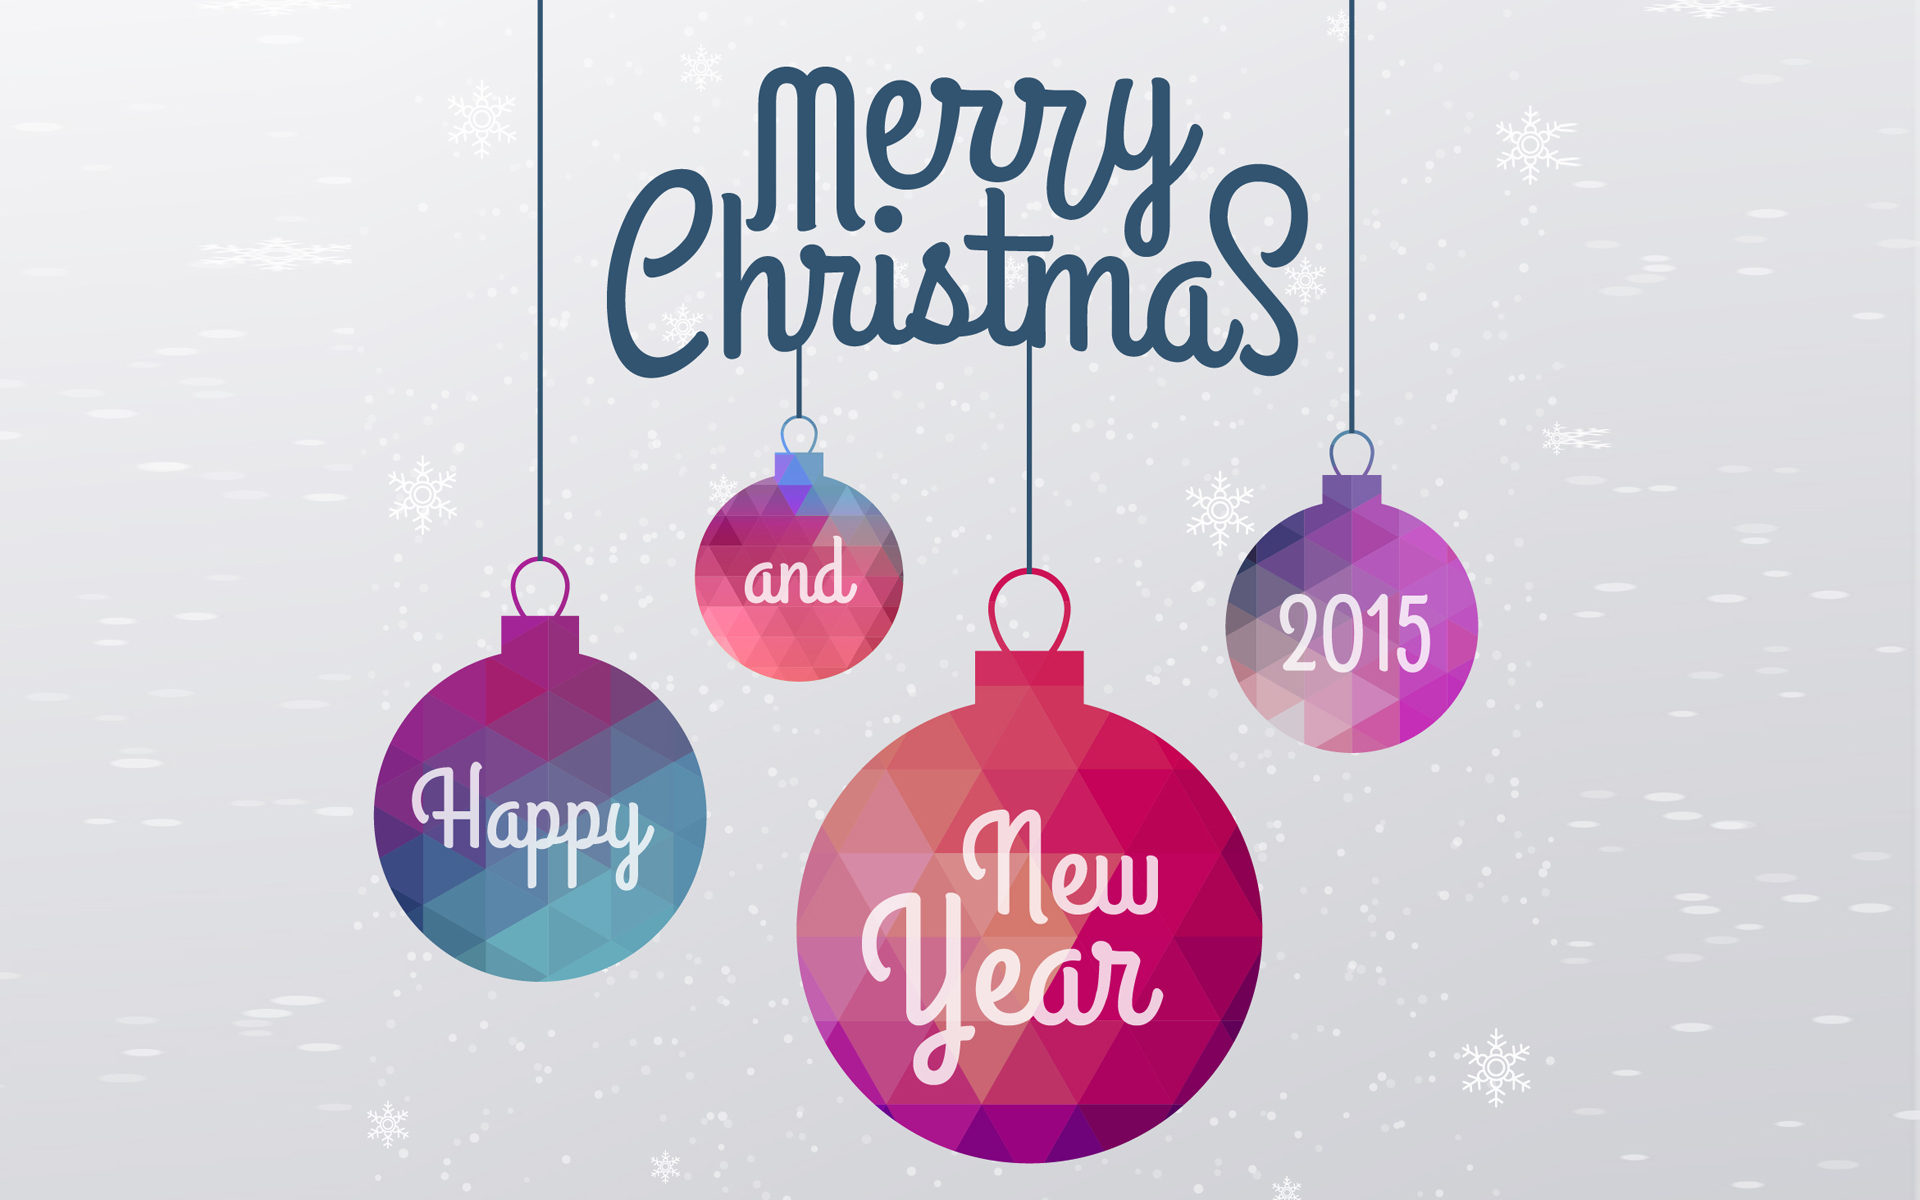 Christmas and New Year 2015 Desktop Wallpaper   HD Wallpapers 1920x1200